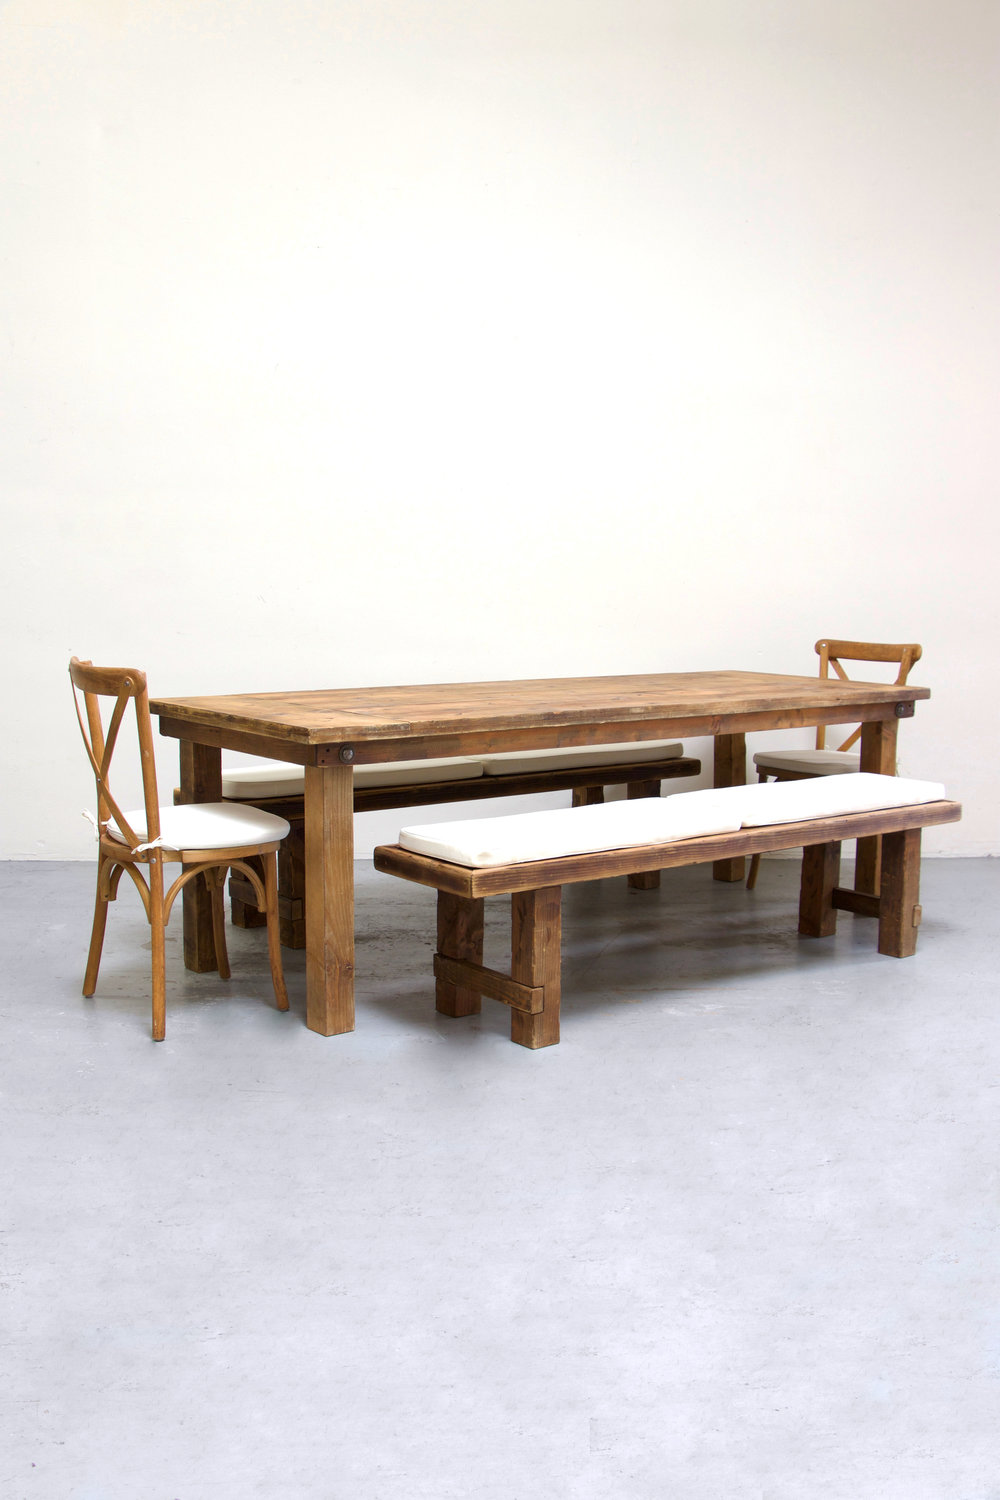 $160 1 Honey Brown Farm Table w/ 2 Long Benches & 2 Cross-Back Chairs